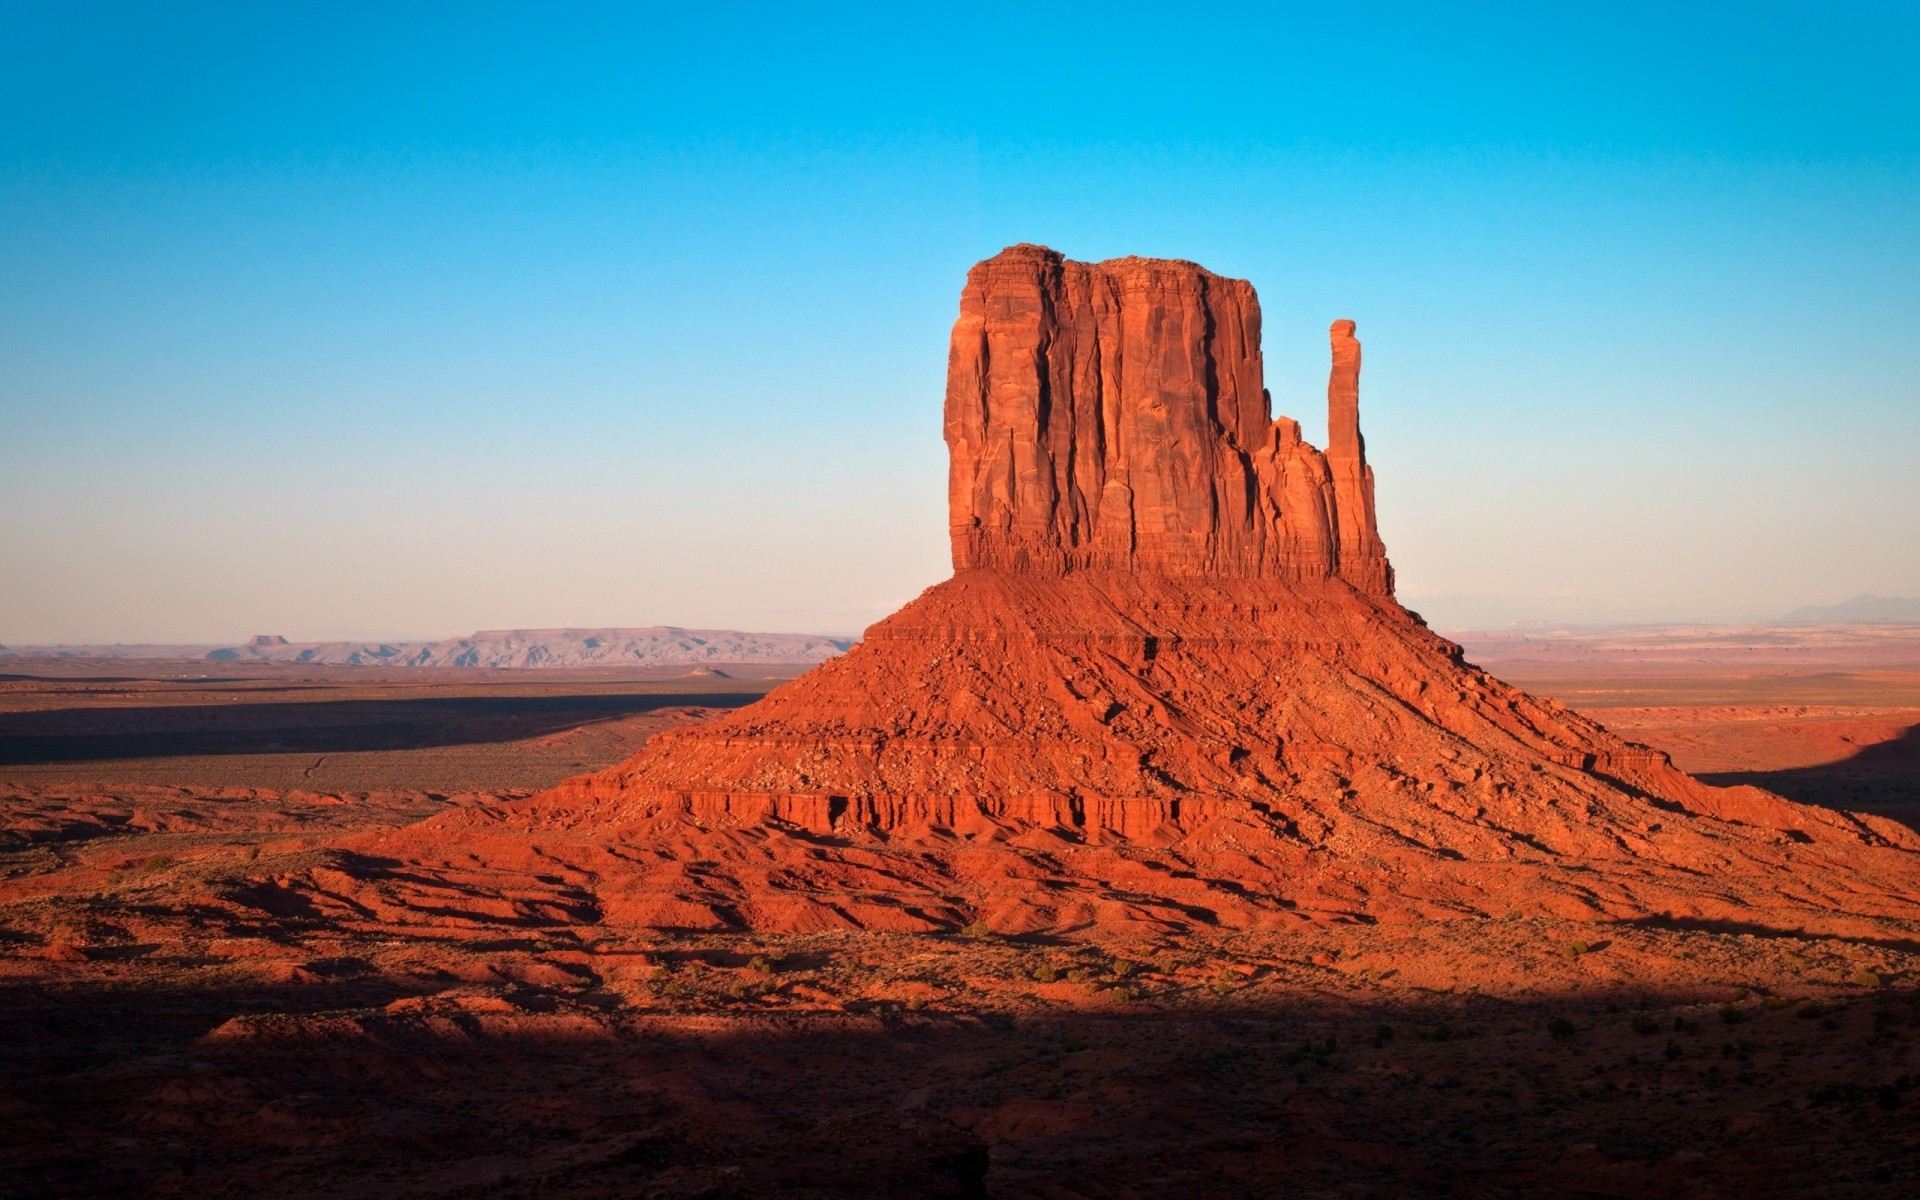 1920x1200 desert arizona monument valley rock formations wallpaper background .